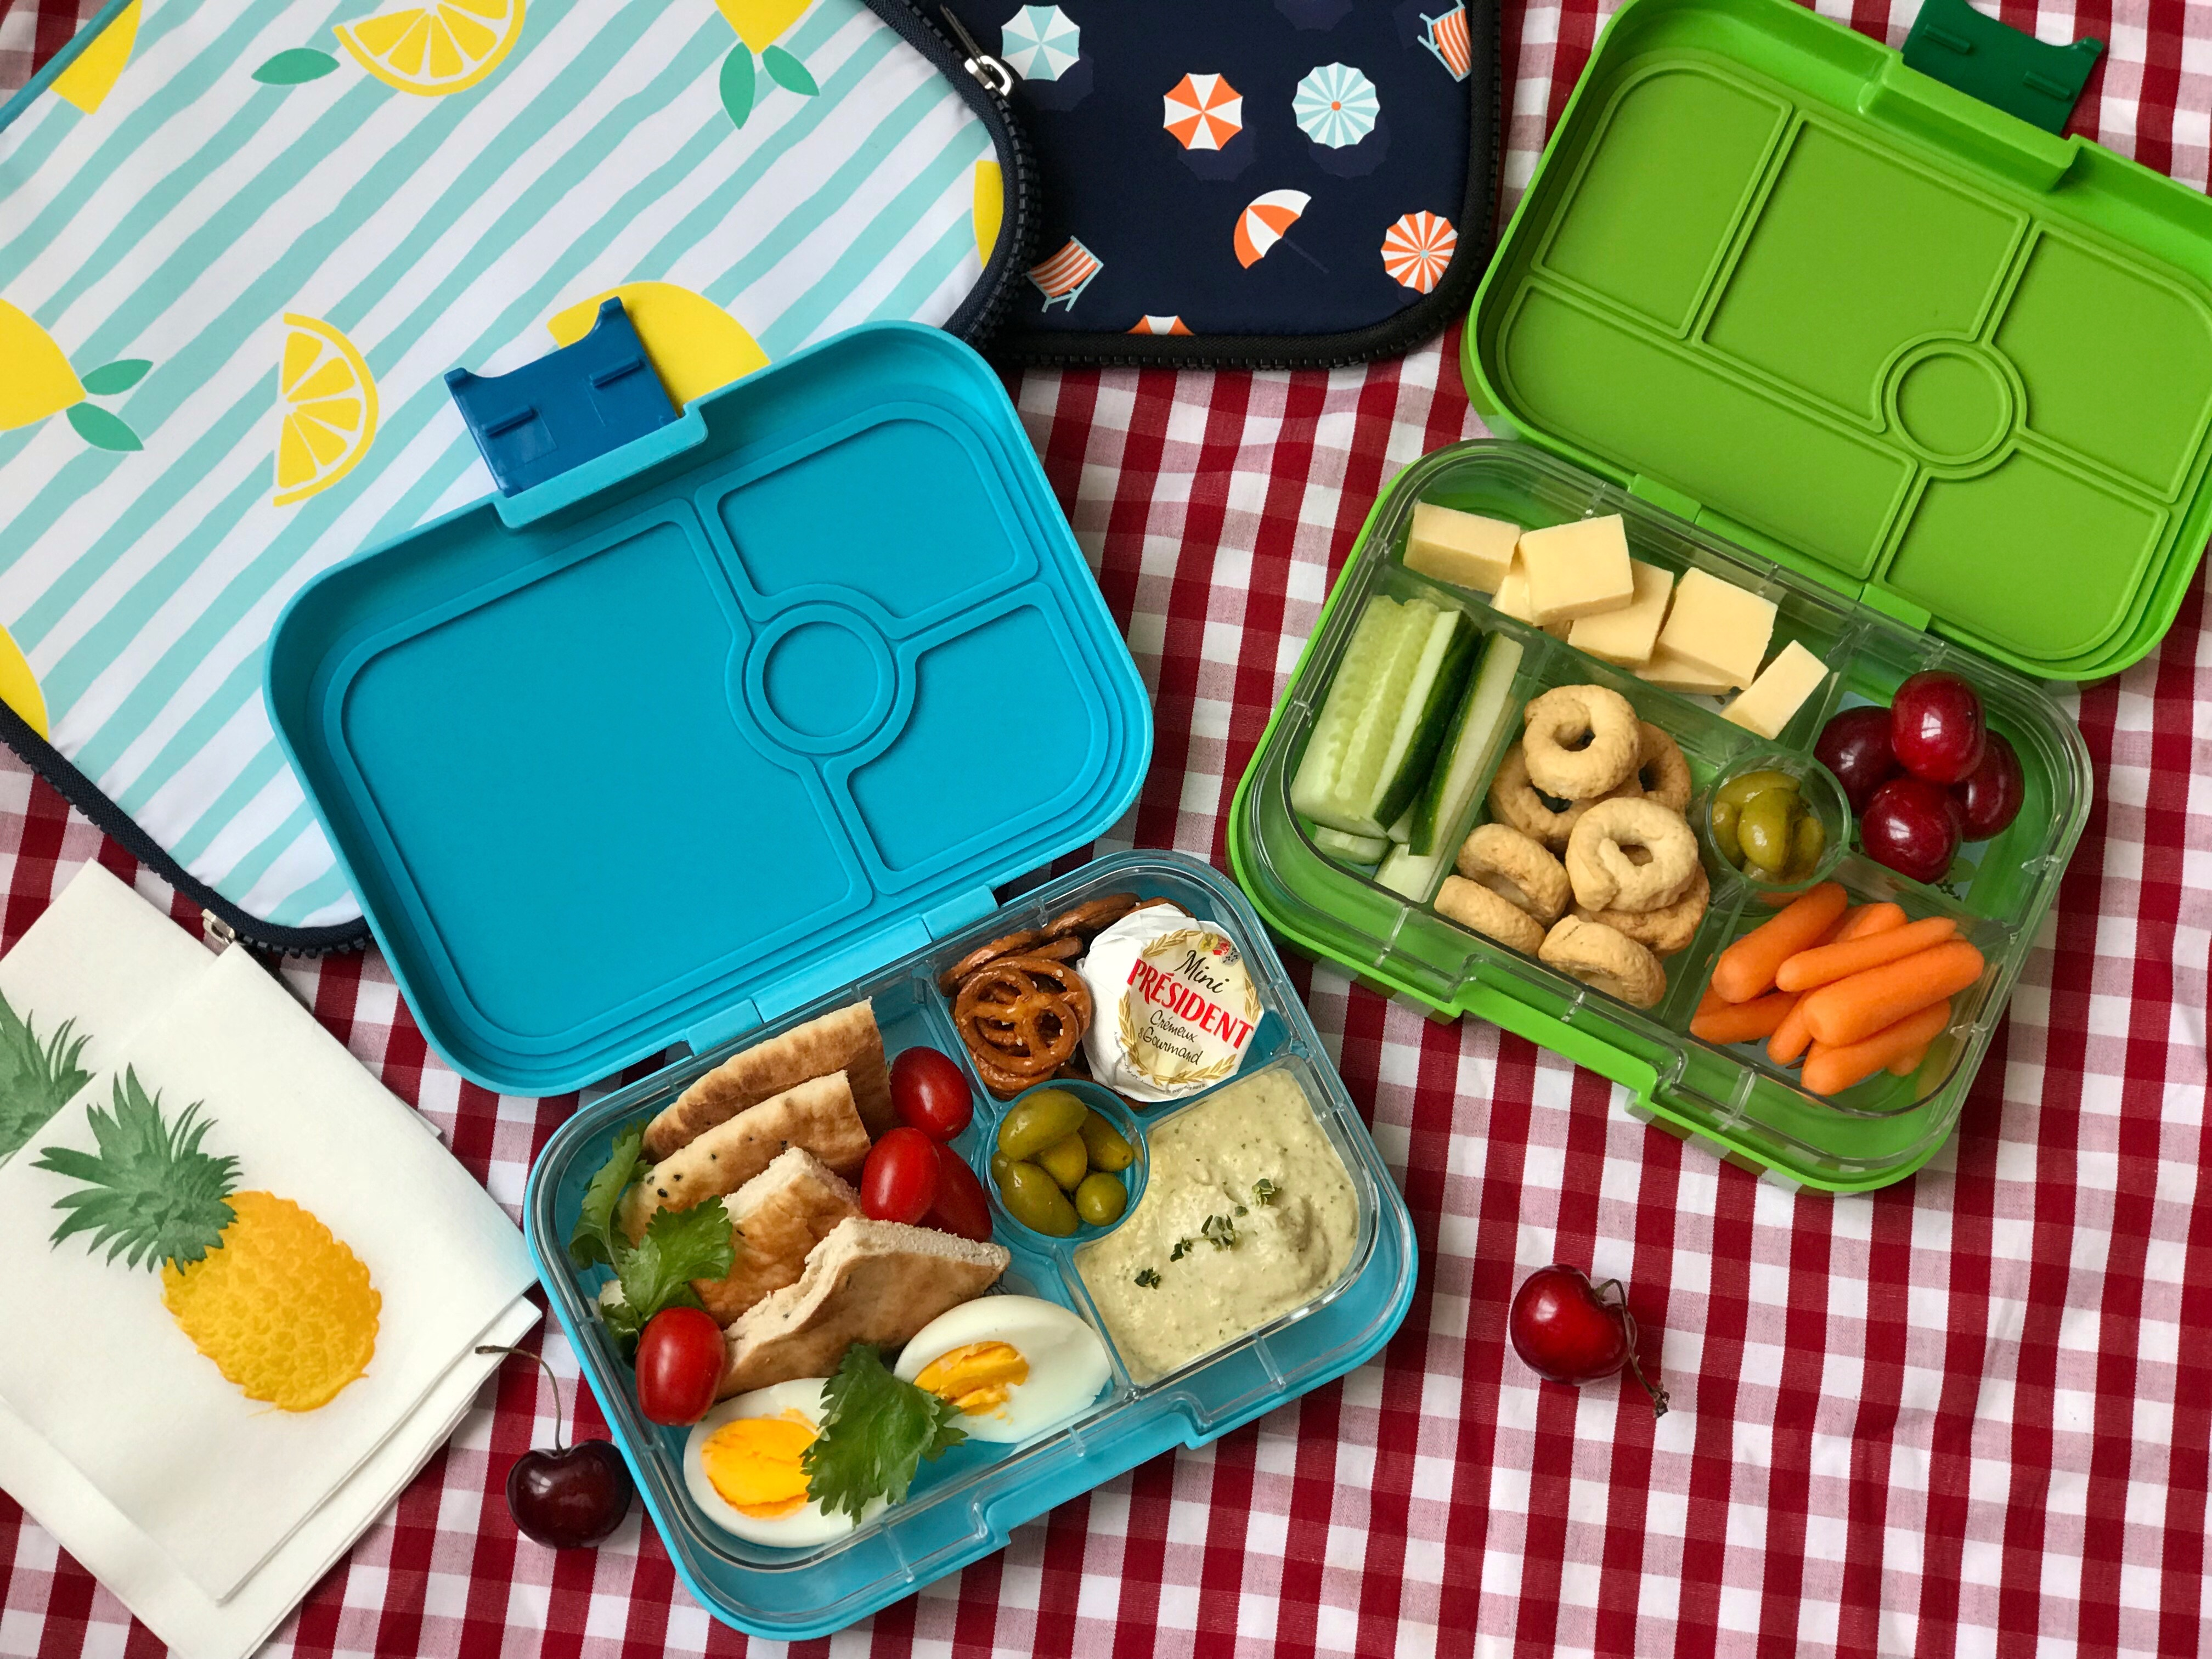 Yumbox - Lifestyle Avocado Green Original and Blue Fish Panino